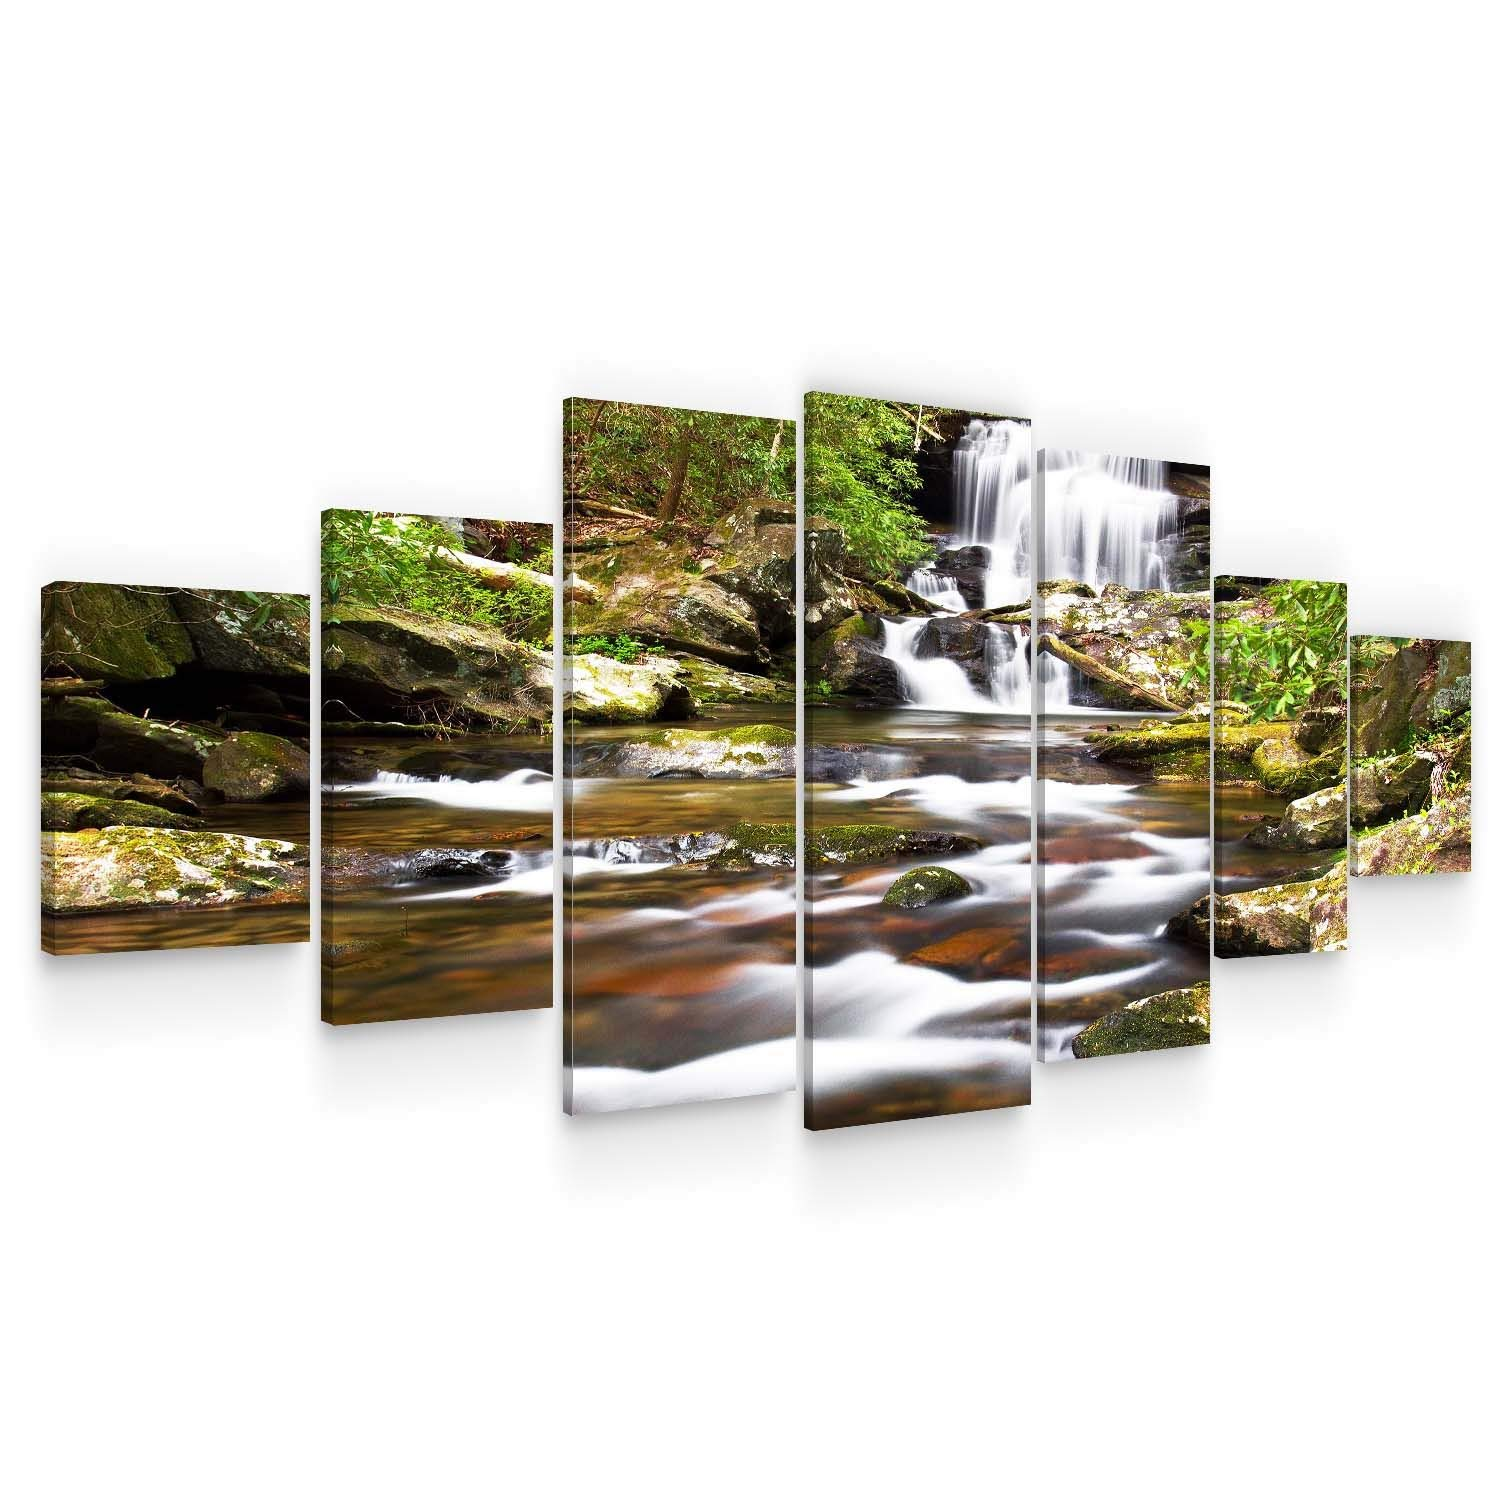 Startonight Huge Canvas Wall Art - Waterfall in The Forest Large Framed Set of 7 40 x 95 Inches